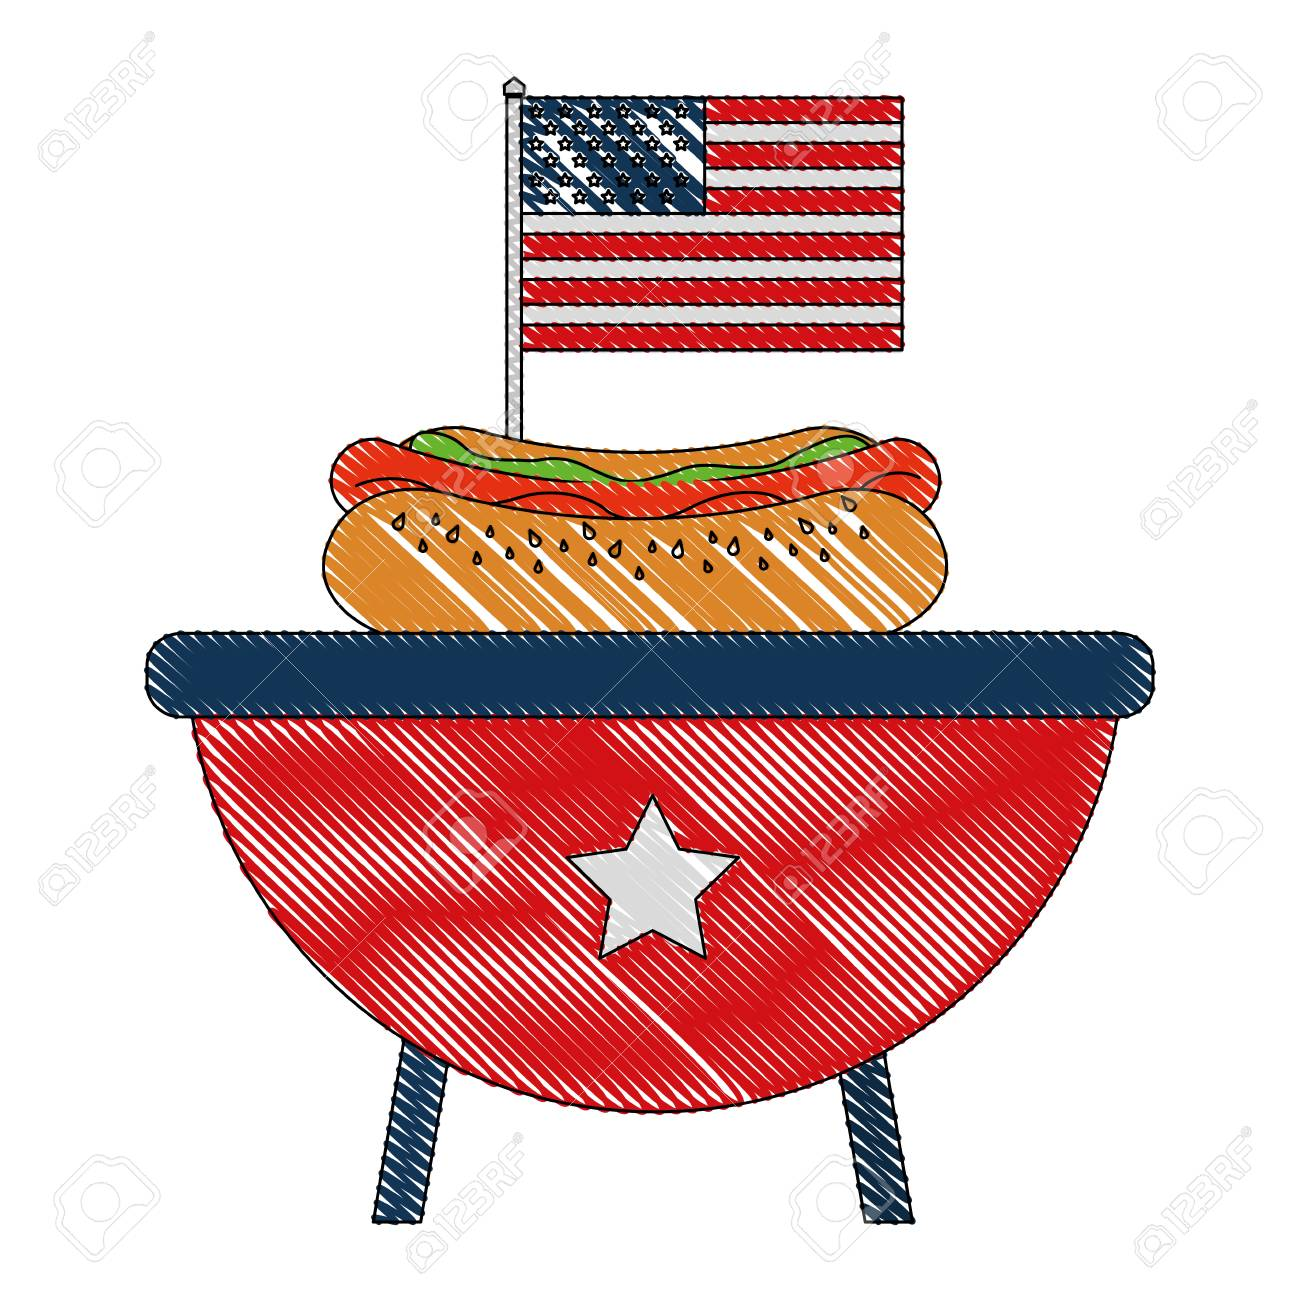 hight resolution of bbq grill with hot dog and american flag vector illustration stock vector 102020752